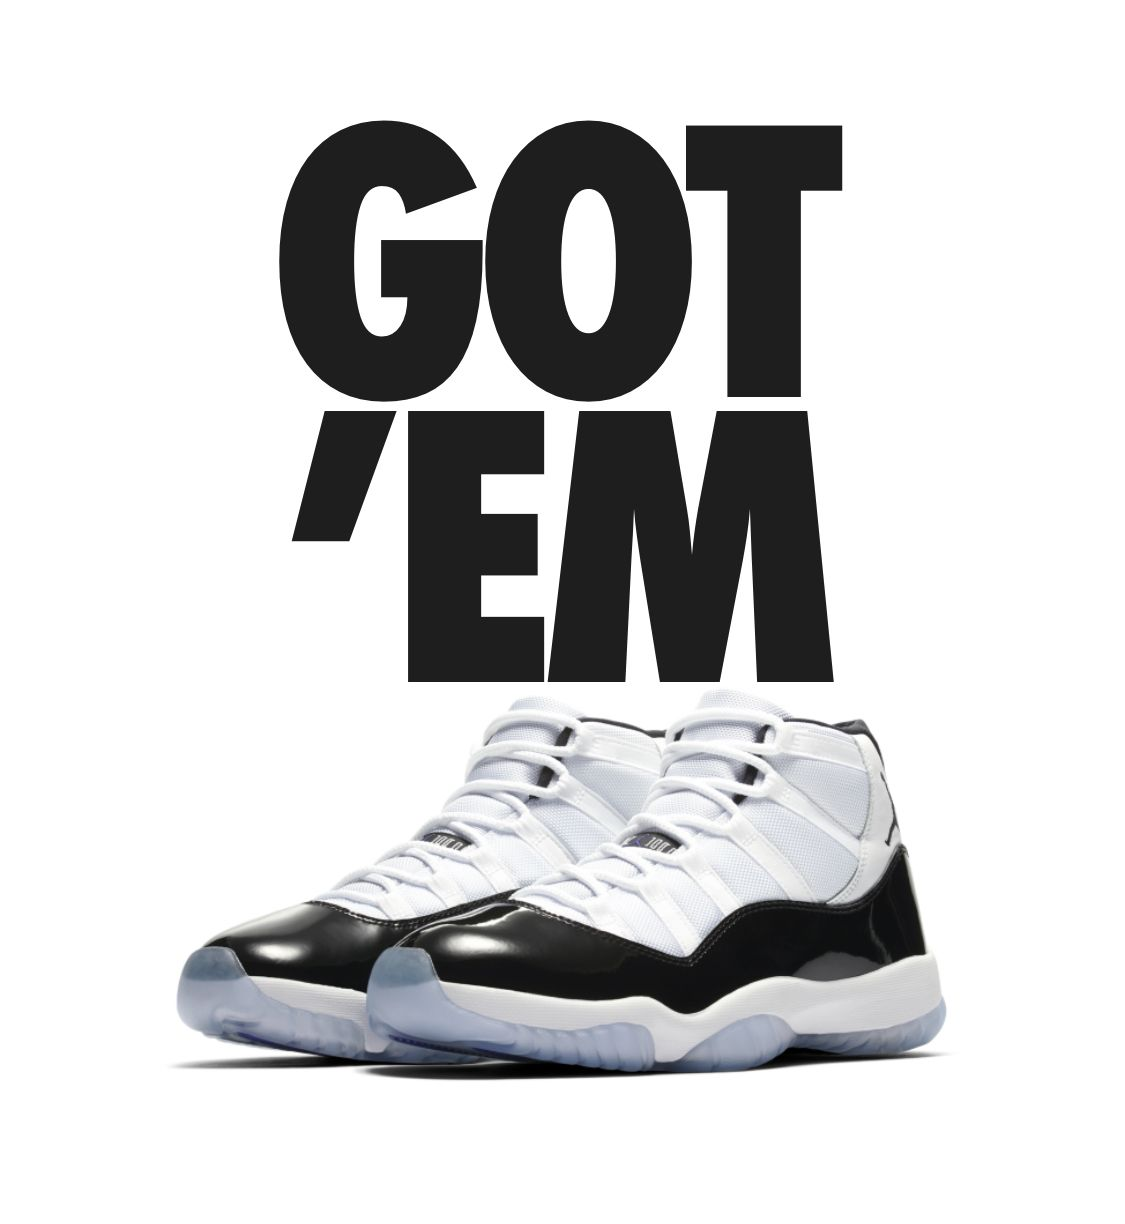 The Air Jordan 11 Retro is yours. Share your latest pick